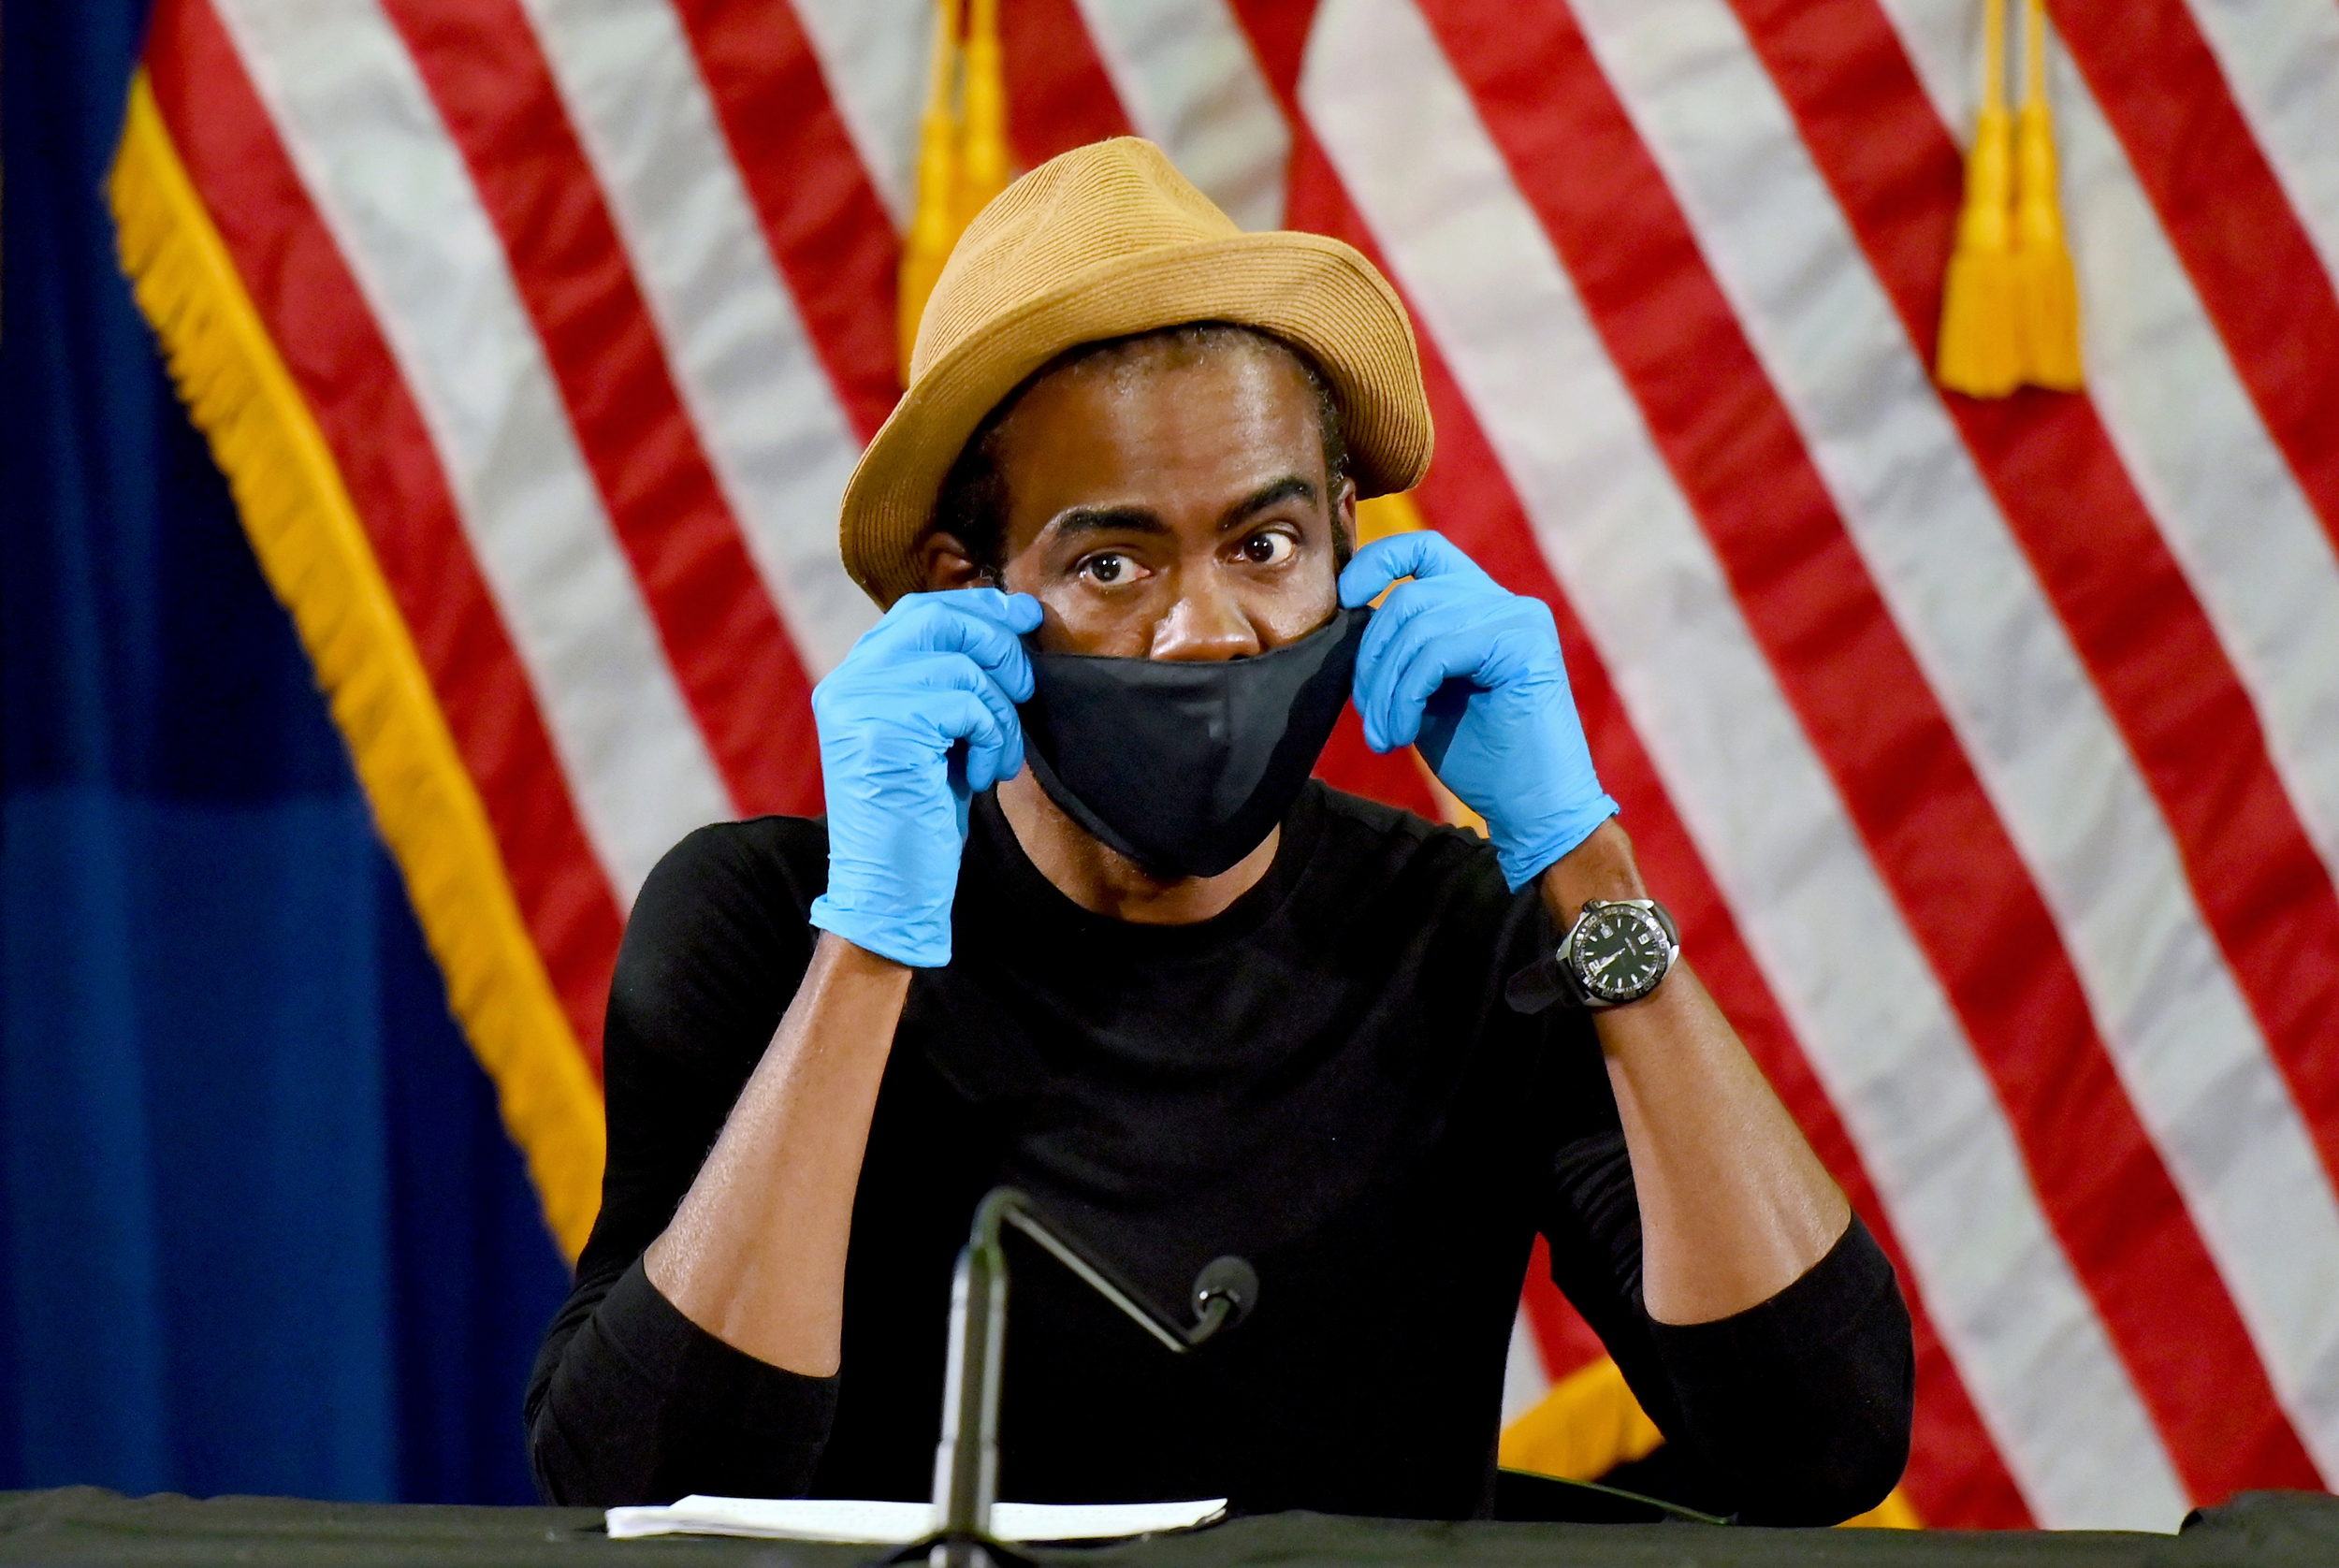 Chris Rock reveals he has Covid, urges people to 'Get Vaccinated'